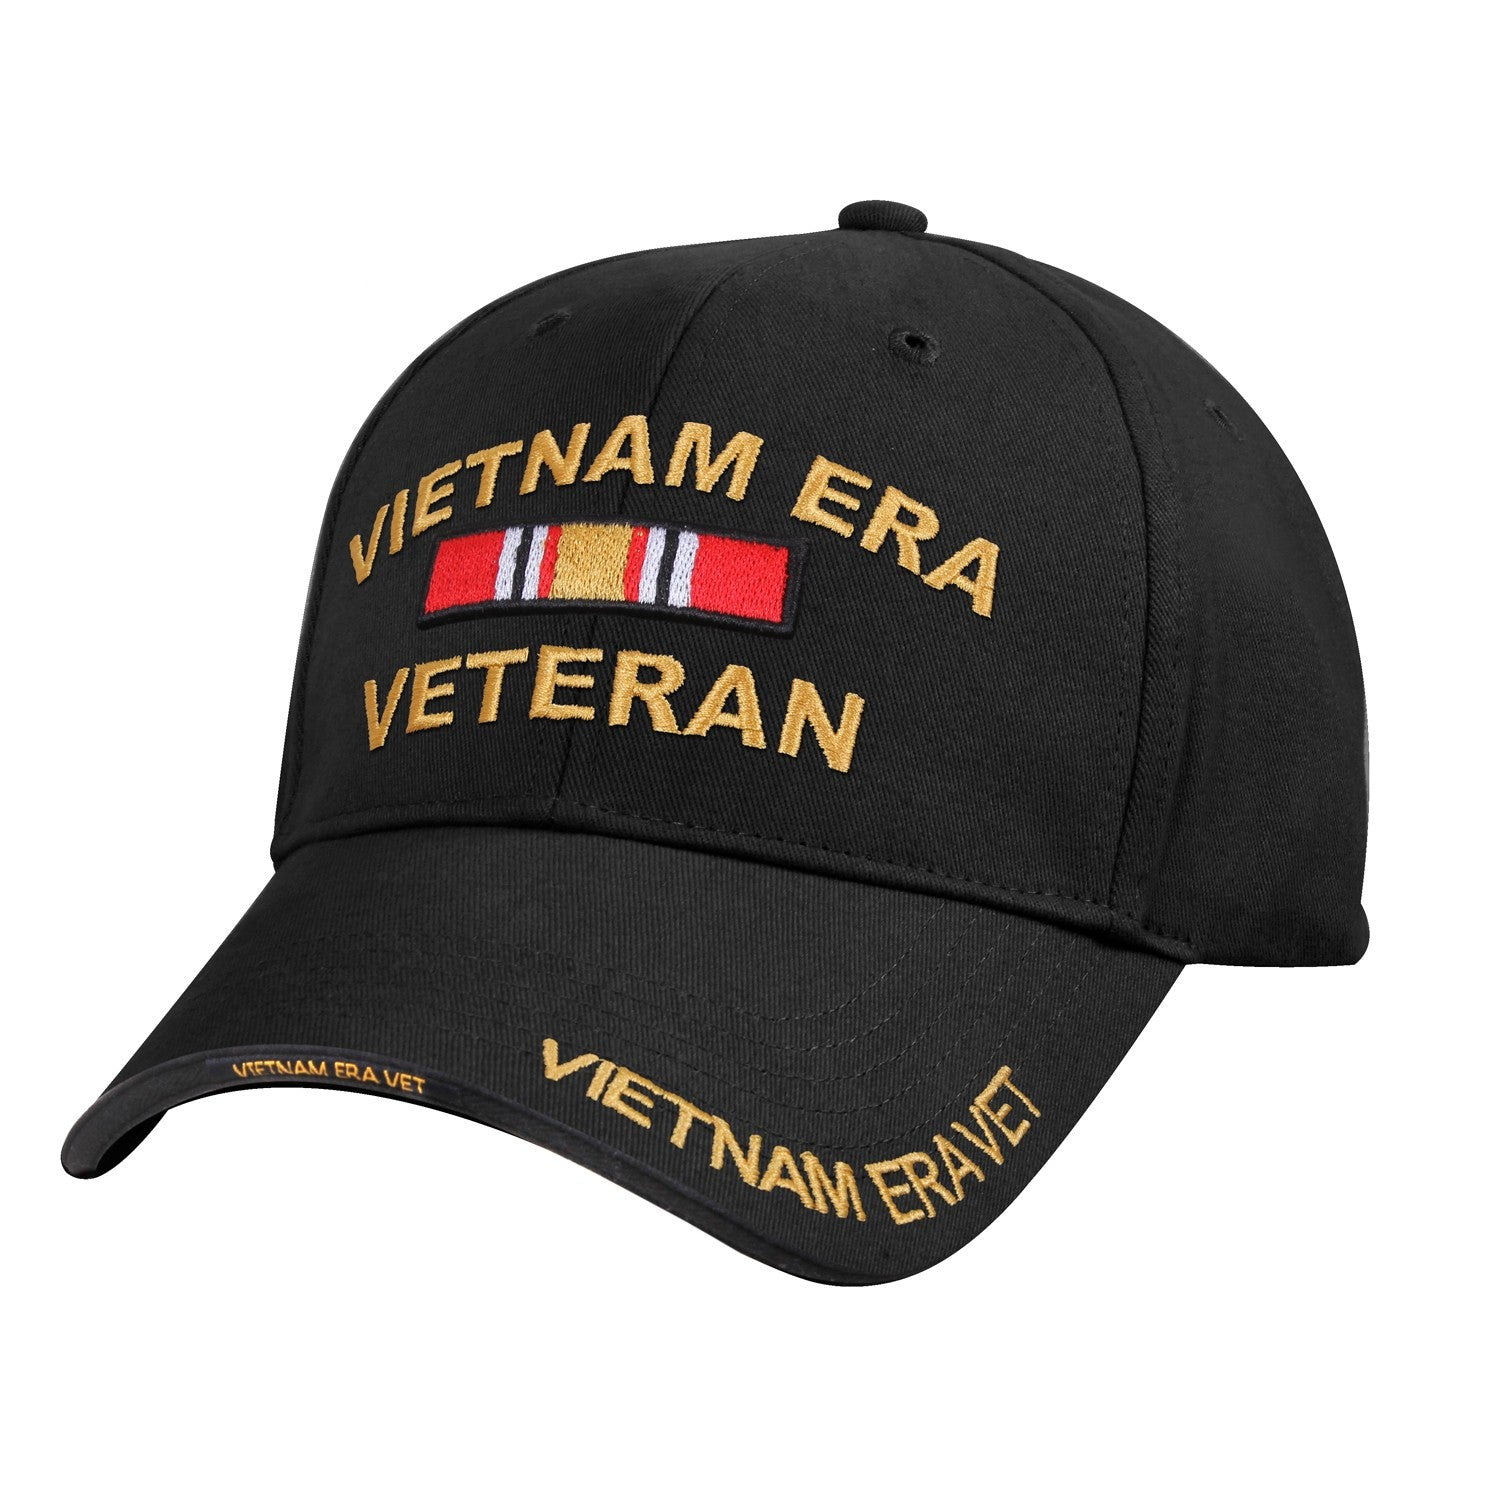 Vietnam Era Hat Black